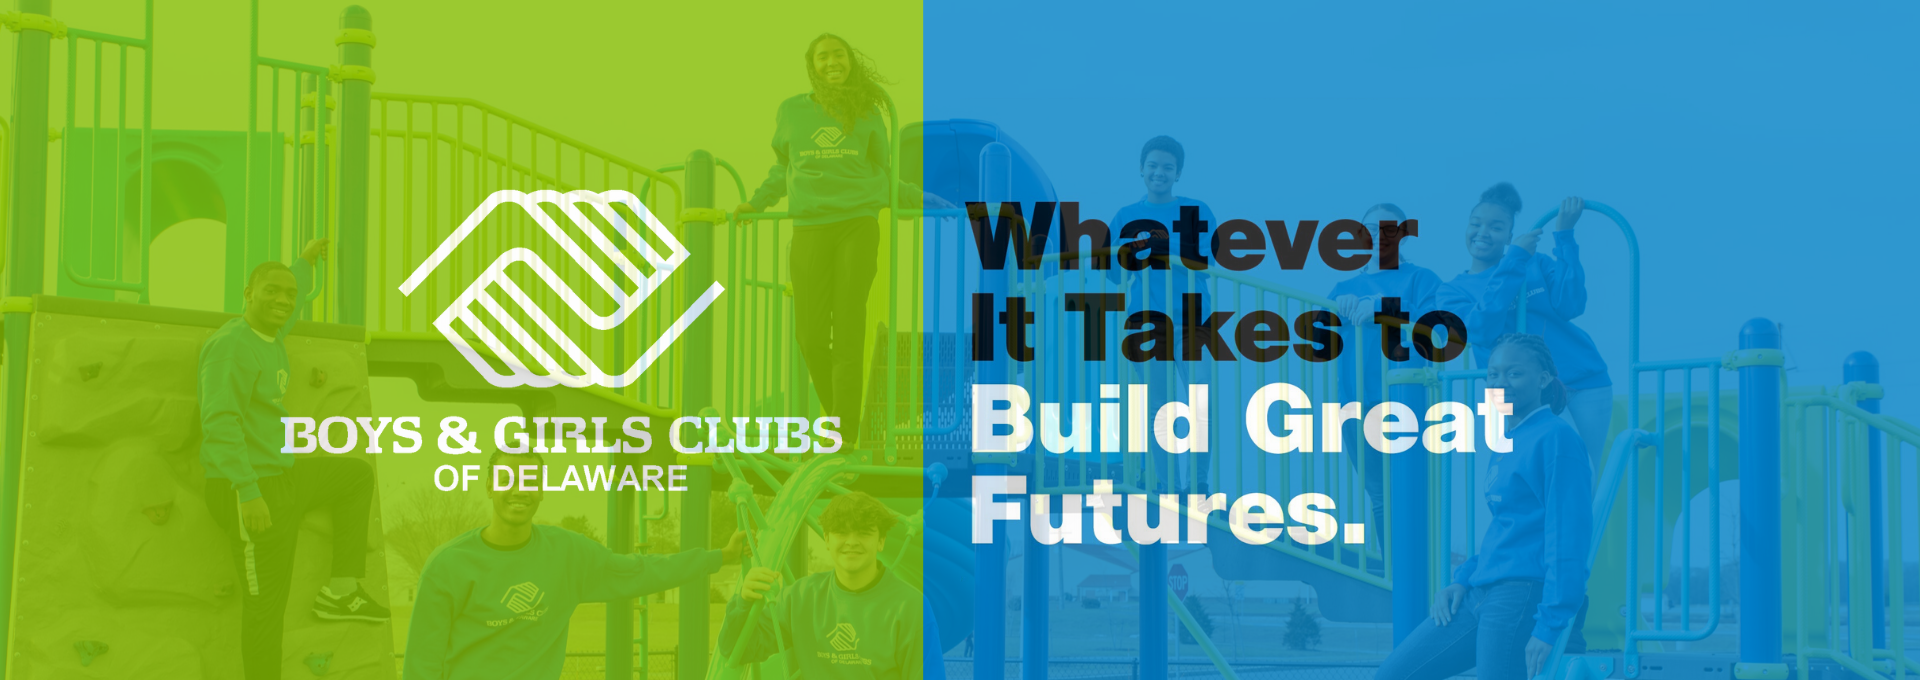 Whatever it takes to build great futures.